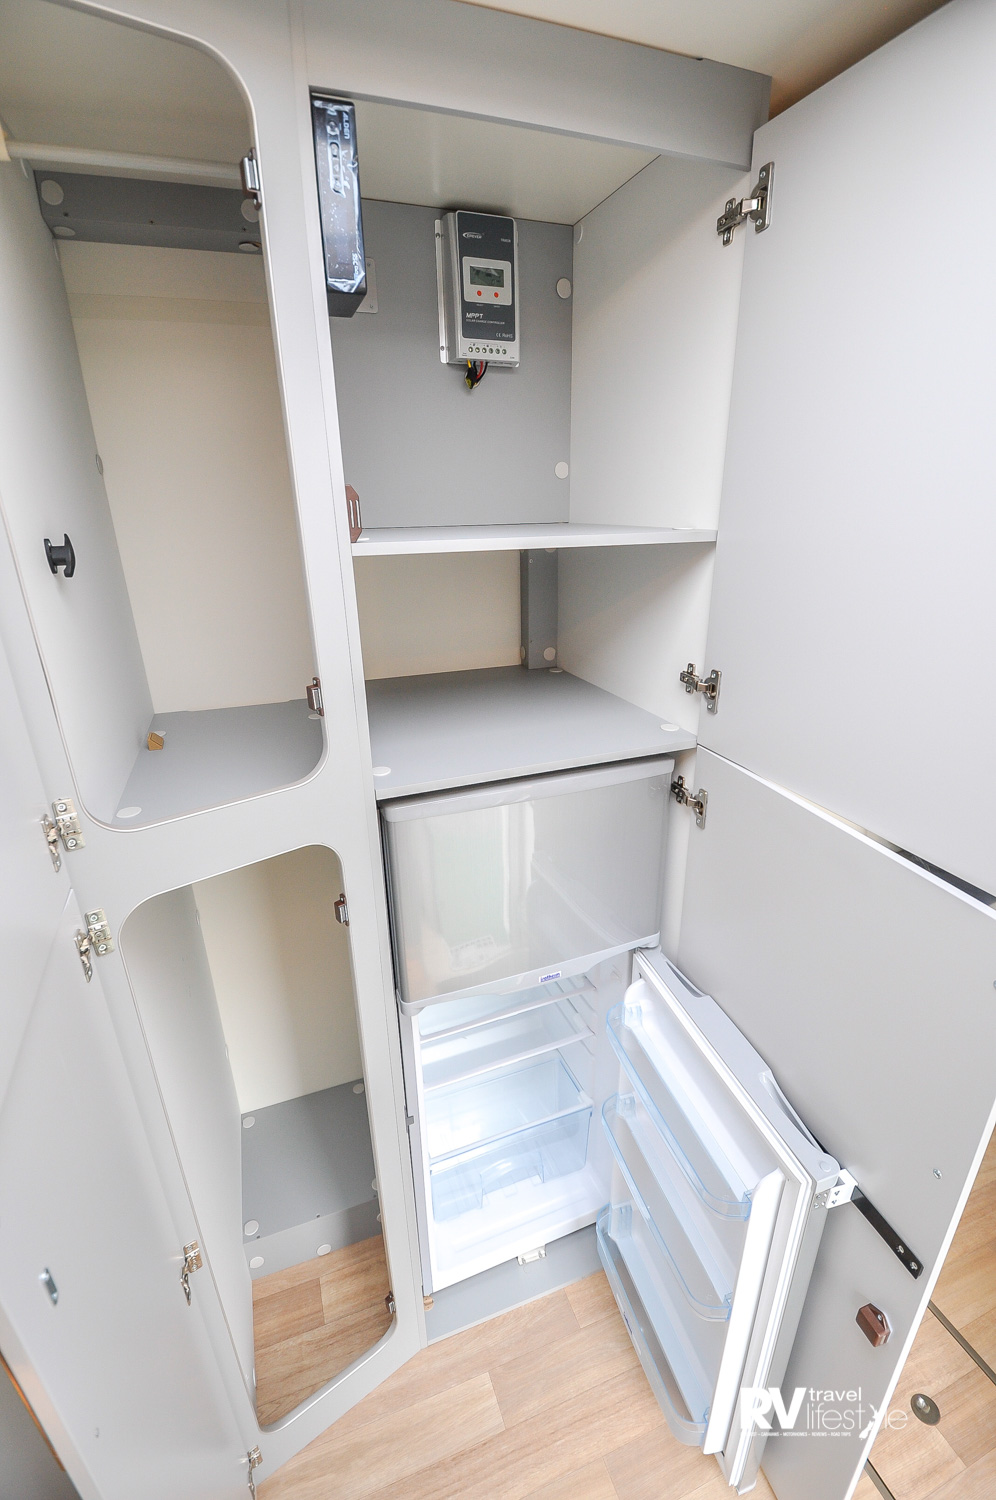 Storage anyone? Seriously check out these two wardrobes, and even more cupboard storage next door. The fridge/freezer is a 169L compressor unit and has a gloss cover door to match the exterior lines beautifully